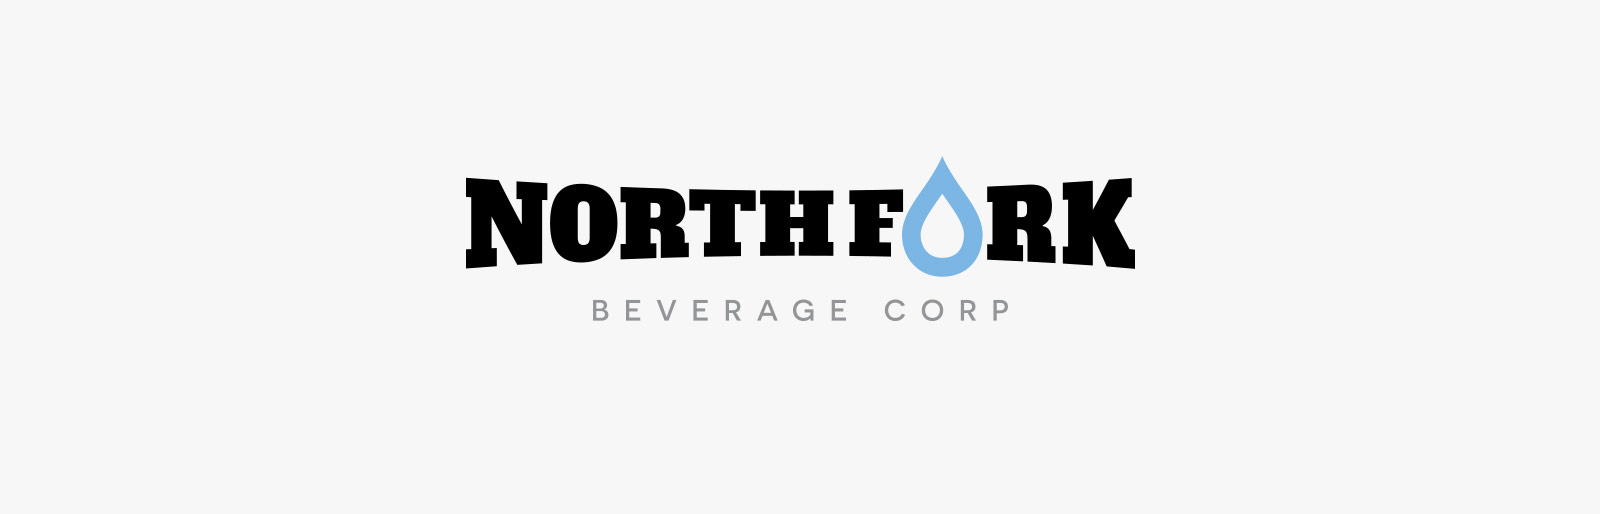 Northfolk Beverage Corp